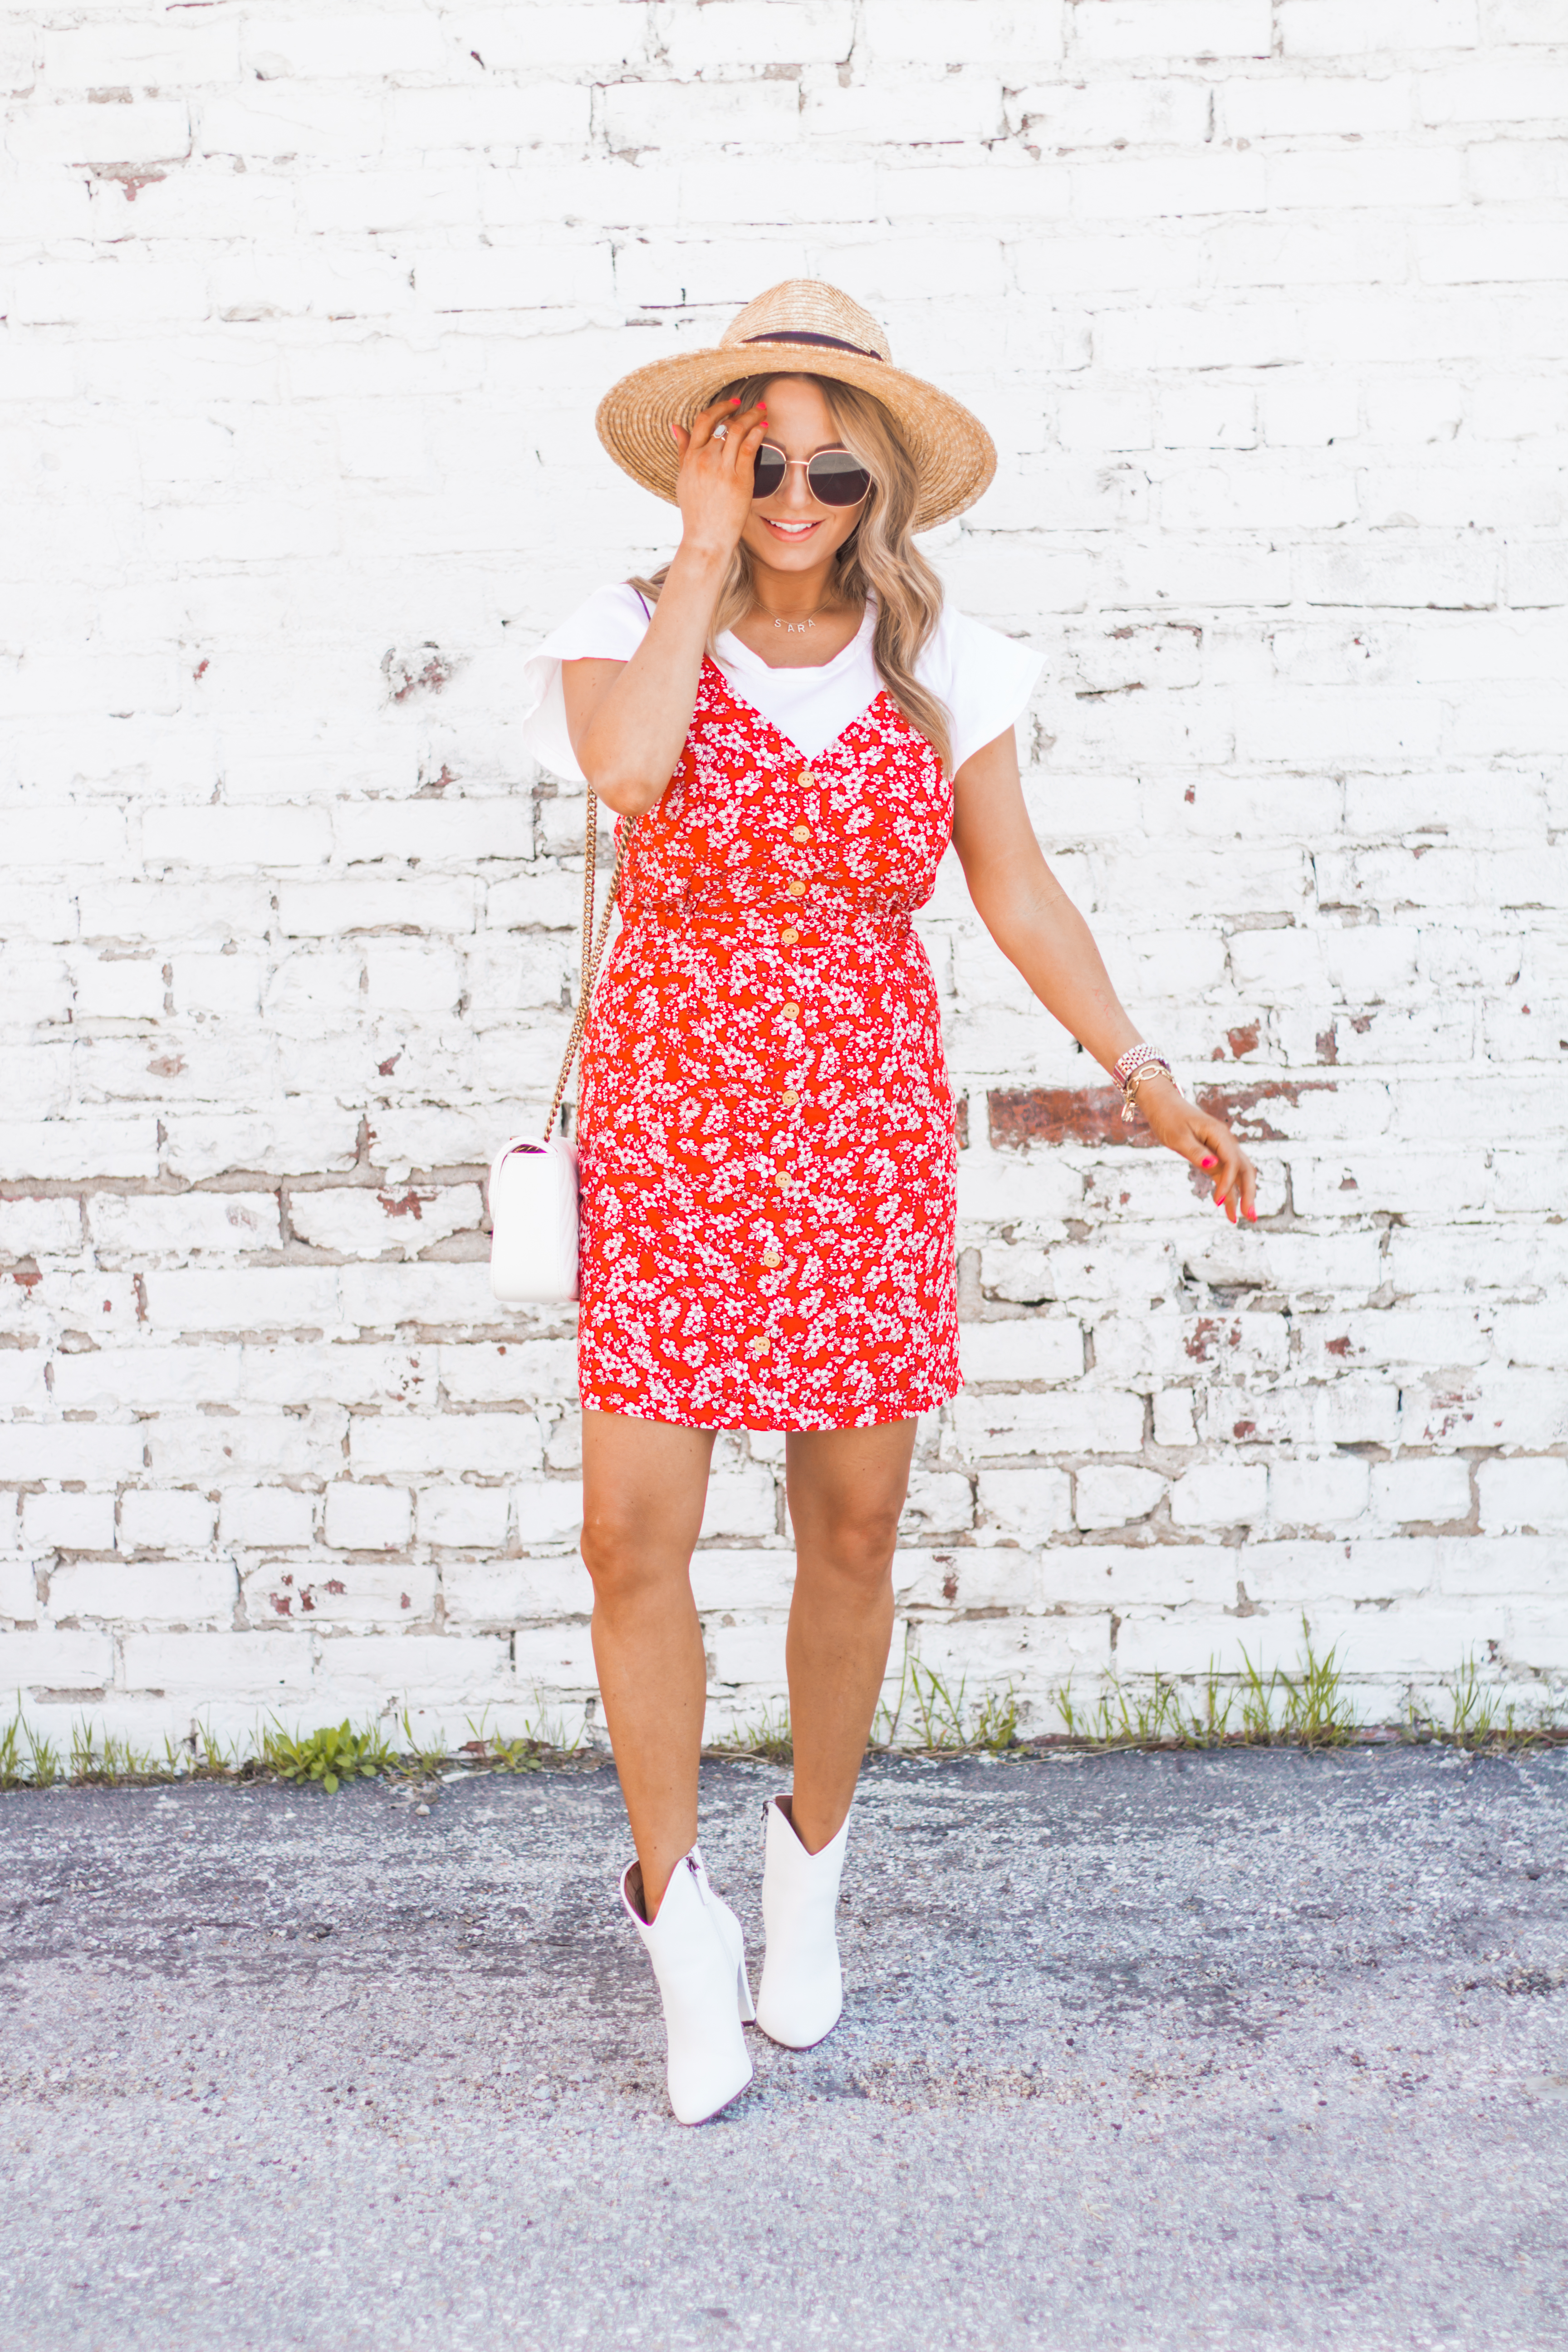 red-sundress-spring-summer-dress-floral dress-women's fashion- spring fashion-summer fashion-brixton hat-white booties-Omaha blogger-sabby style-4